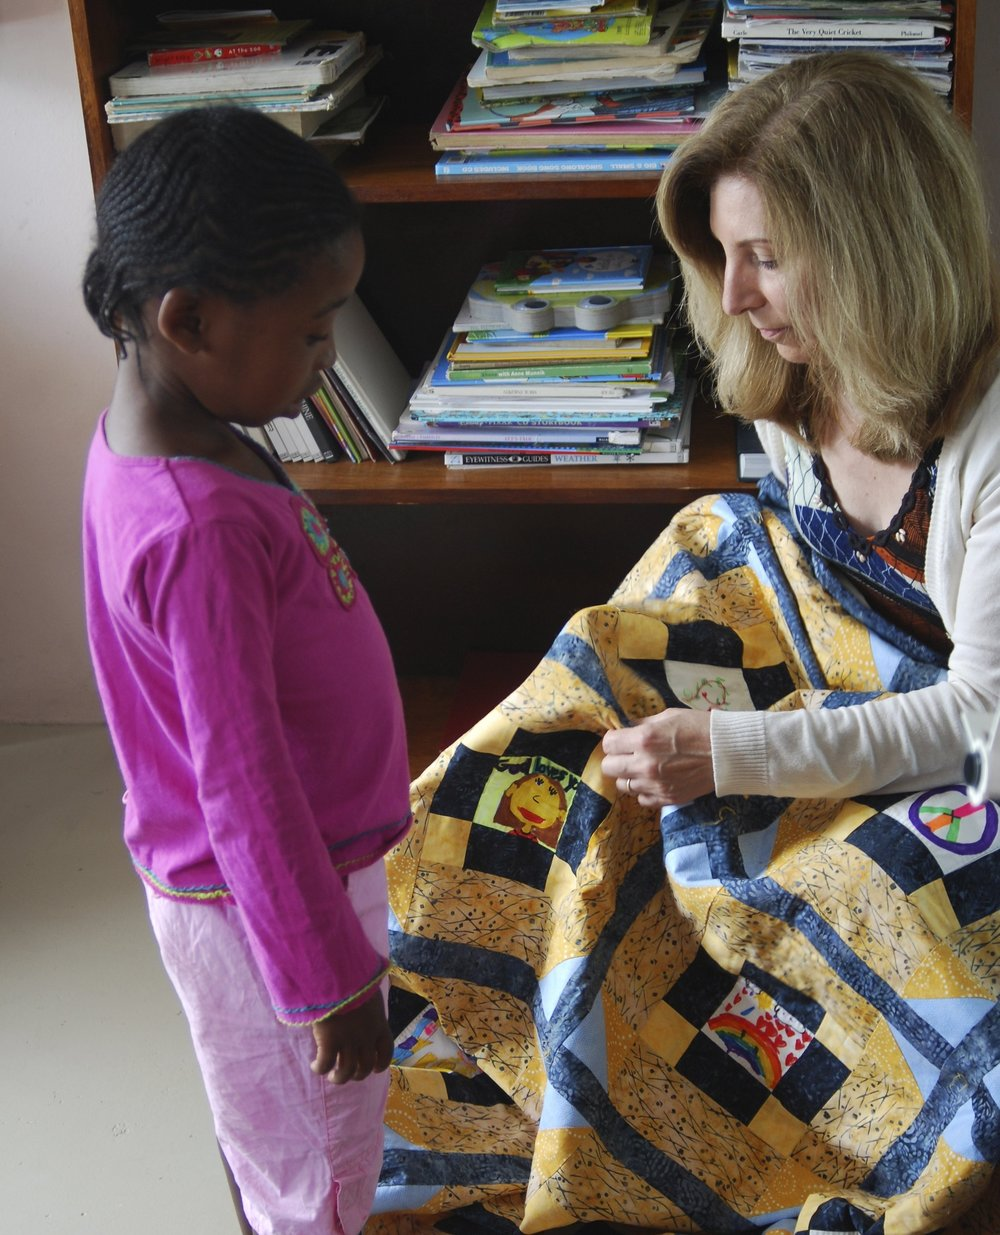 ABOUT US - The Love Quilt Project is changing the lives of vulnerable and orphaned South African children, many of them affected by the HIV / AIDS pandemic. We build relationships between American and South African children by funding education that teaches lessons on kindness, tolerance, and compassion to both groups.American children express what they have learned by drawing messages of love on small fabric squares that are stitched into quilts and distributed to children in South Africa's hardest hit communities. In return, the recipients also create art squares for quilts to be given to American children affected by HIV / AIDS.Love is the Common Thread will celebrate the thousands of children we have reached in both South Africa and the US, while raising the necessary funds to provide programs to more vulnerable children affected by the HIV / AIDS epidemic.